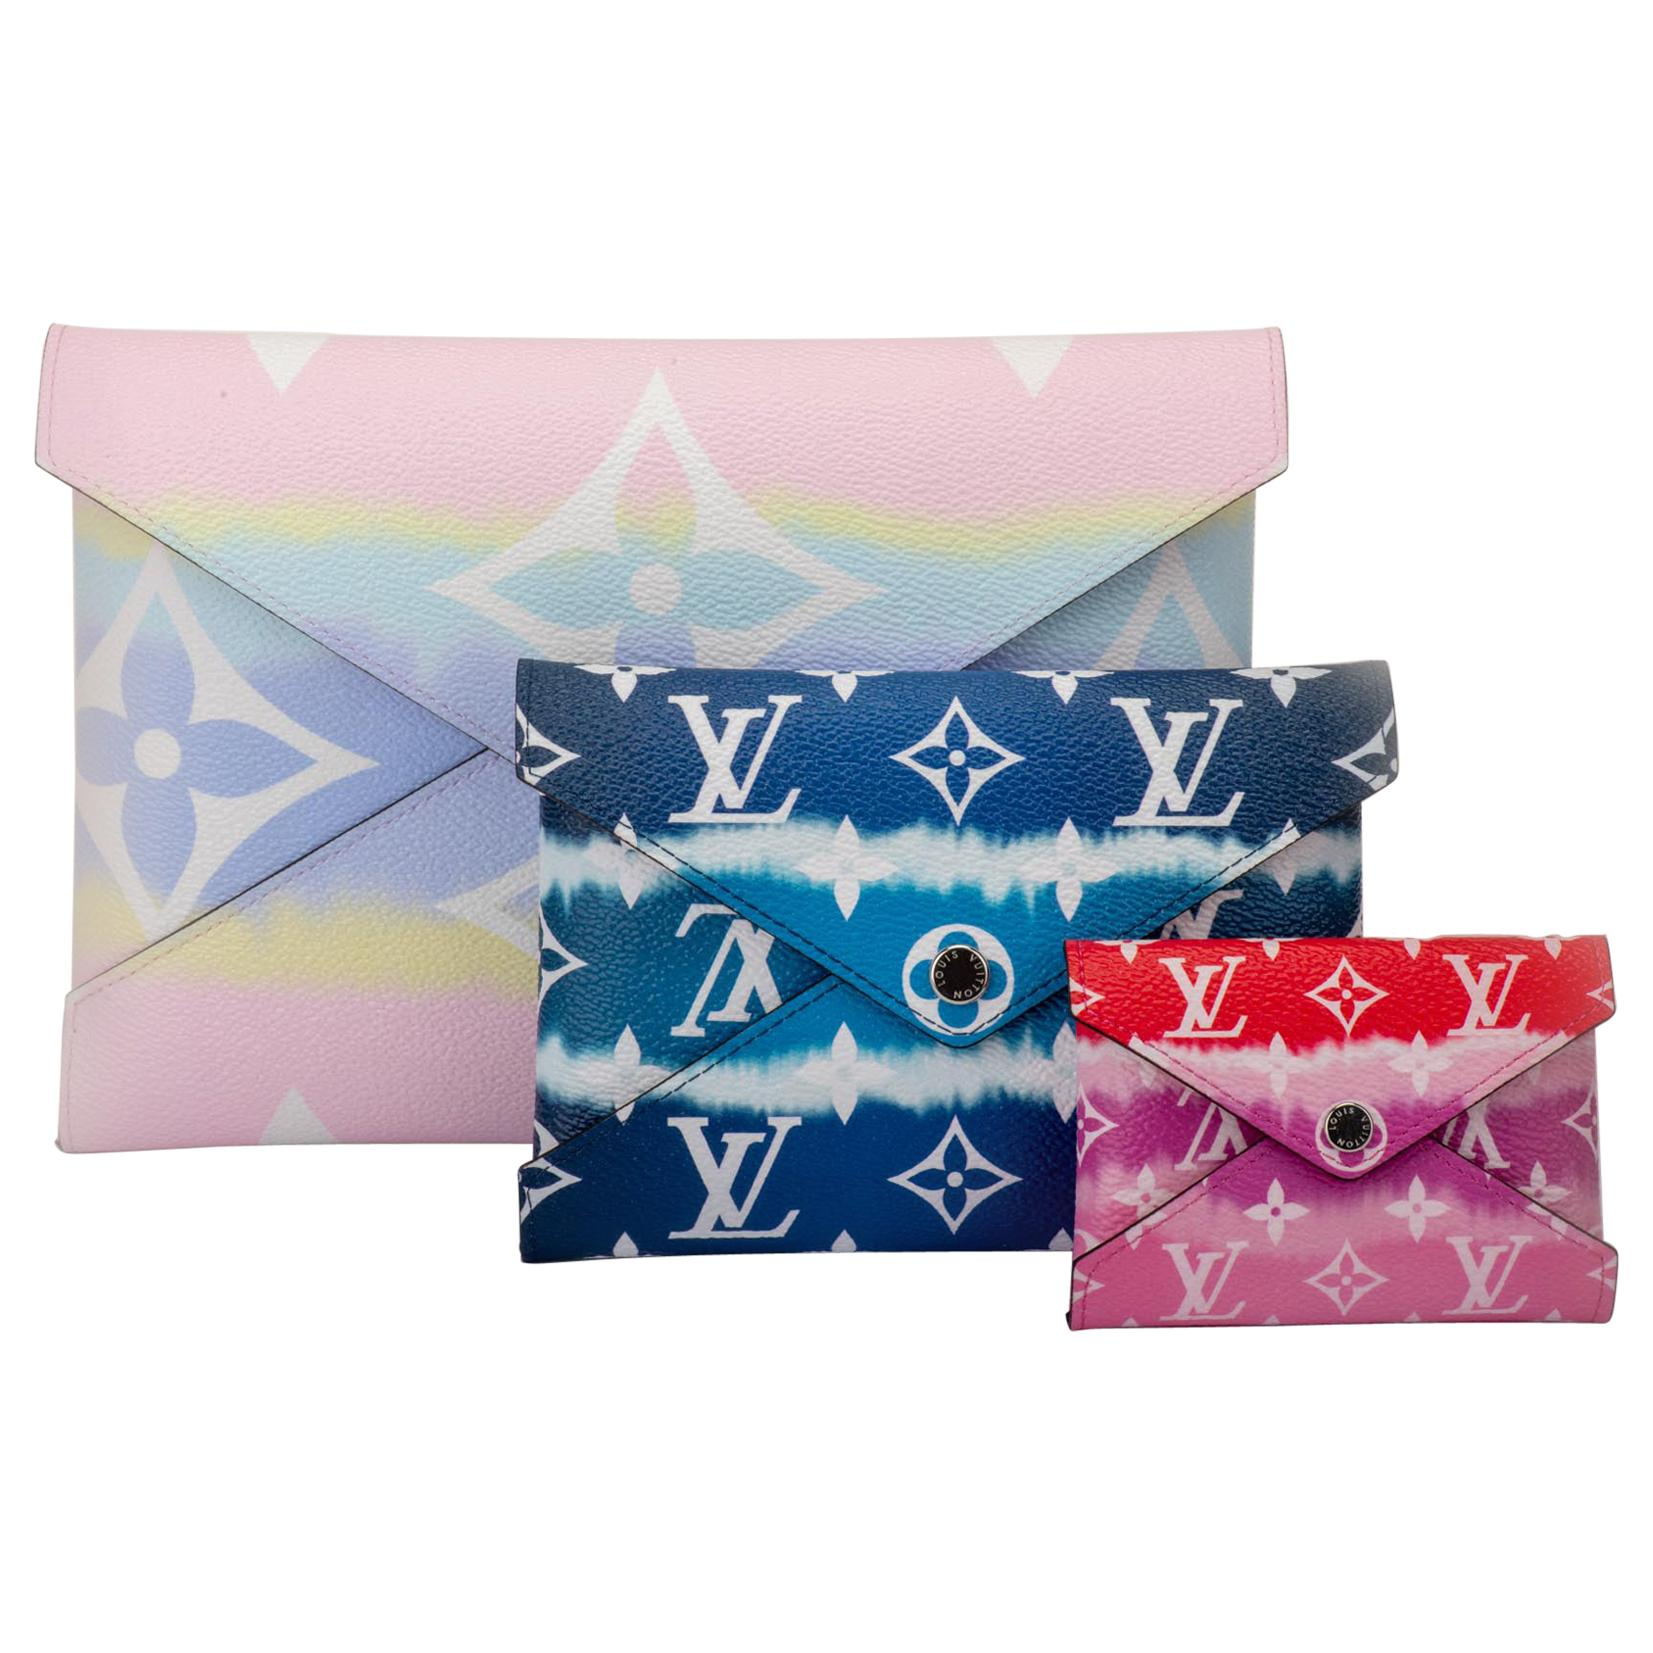 New in Box Louis Vuitton Escale Limited Edition Puchettes Clutch Bag - Set of 3